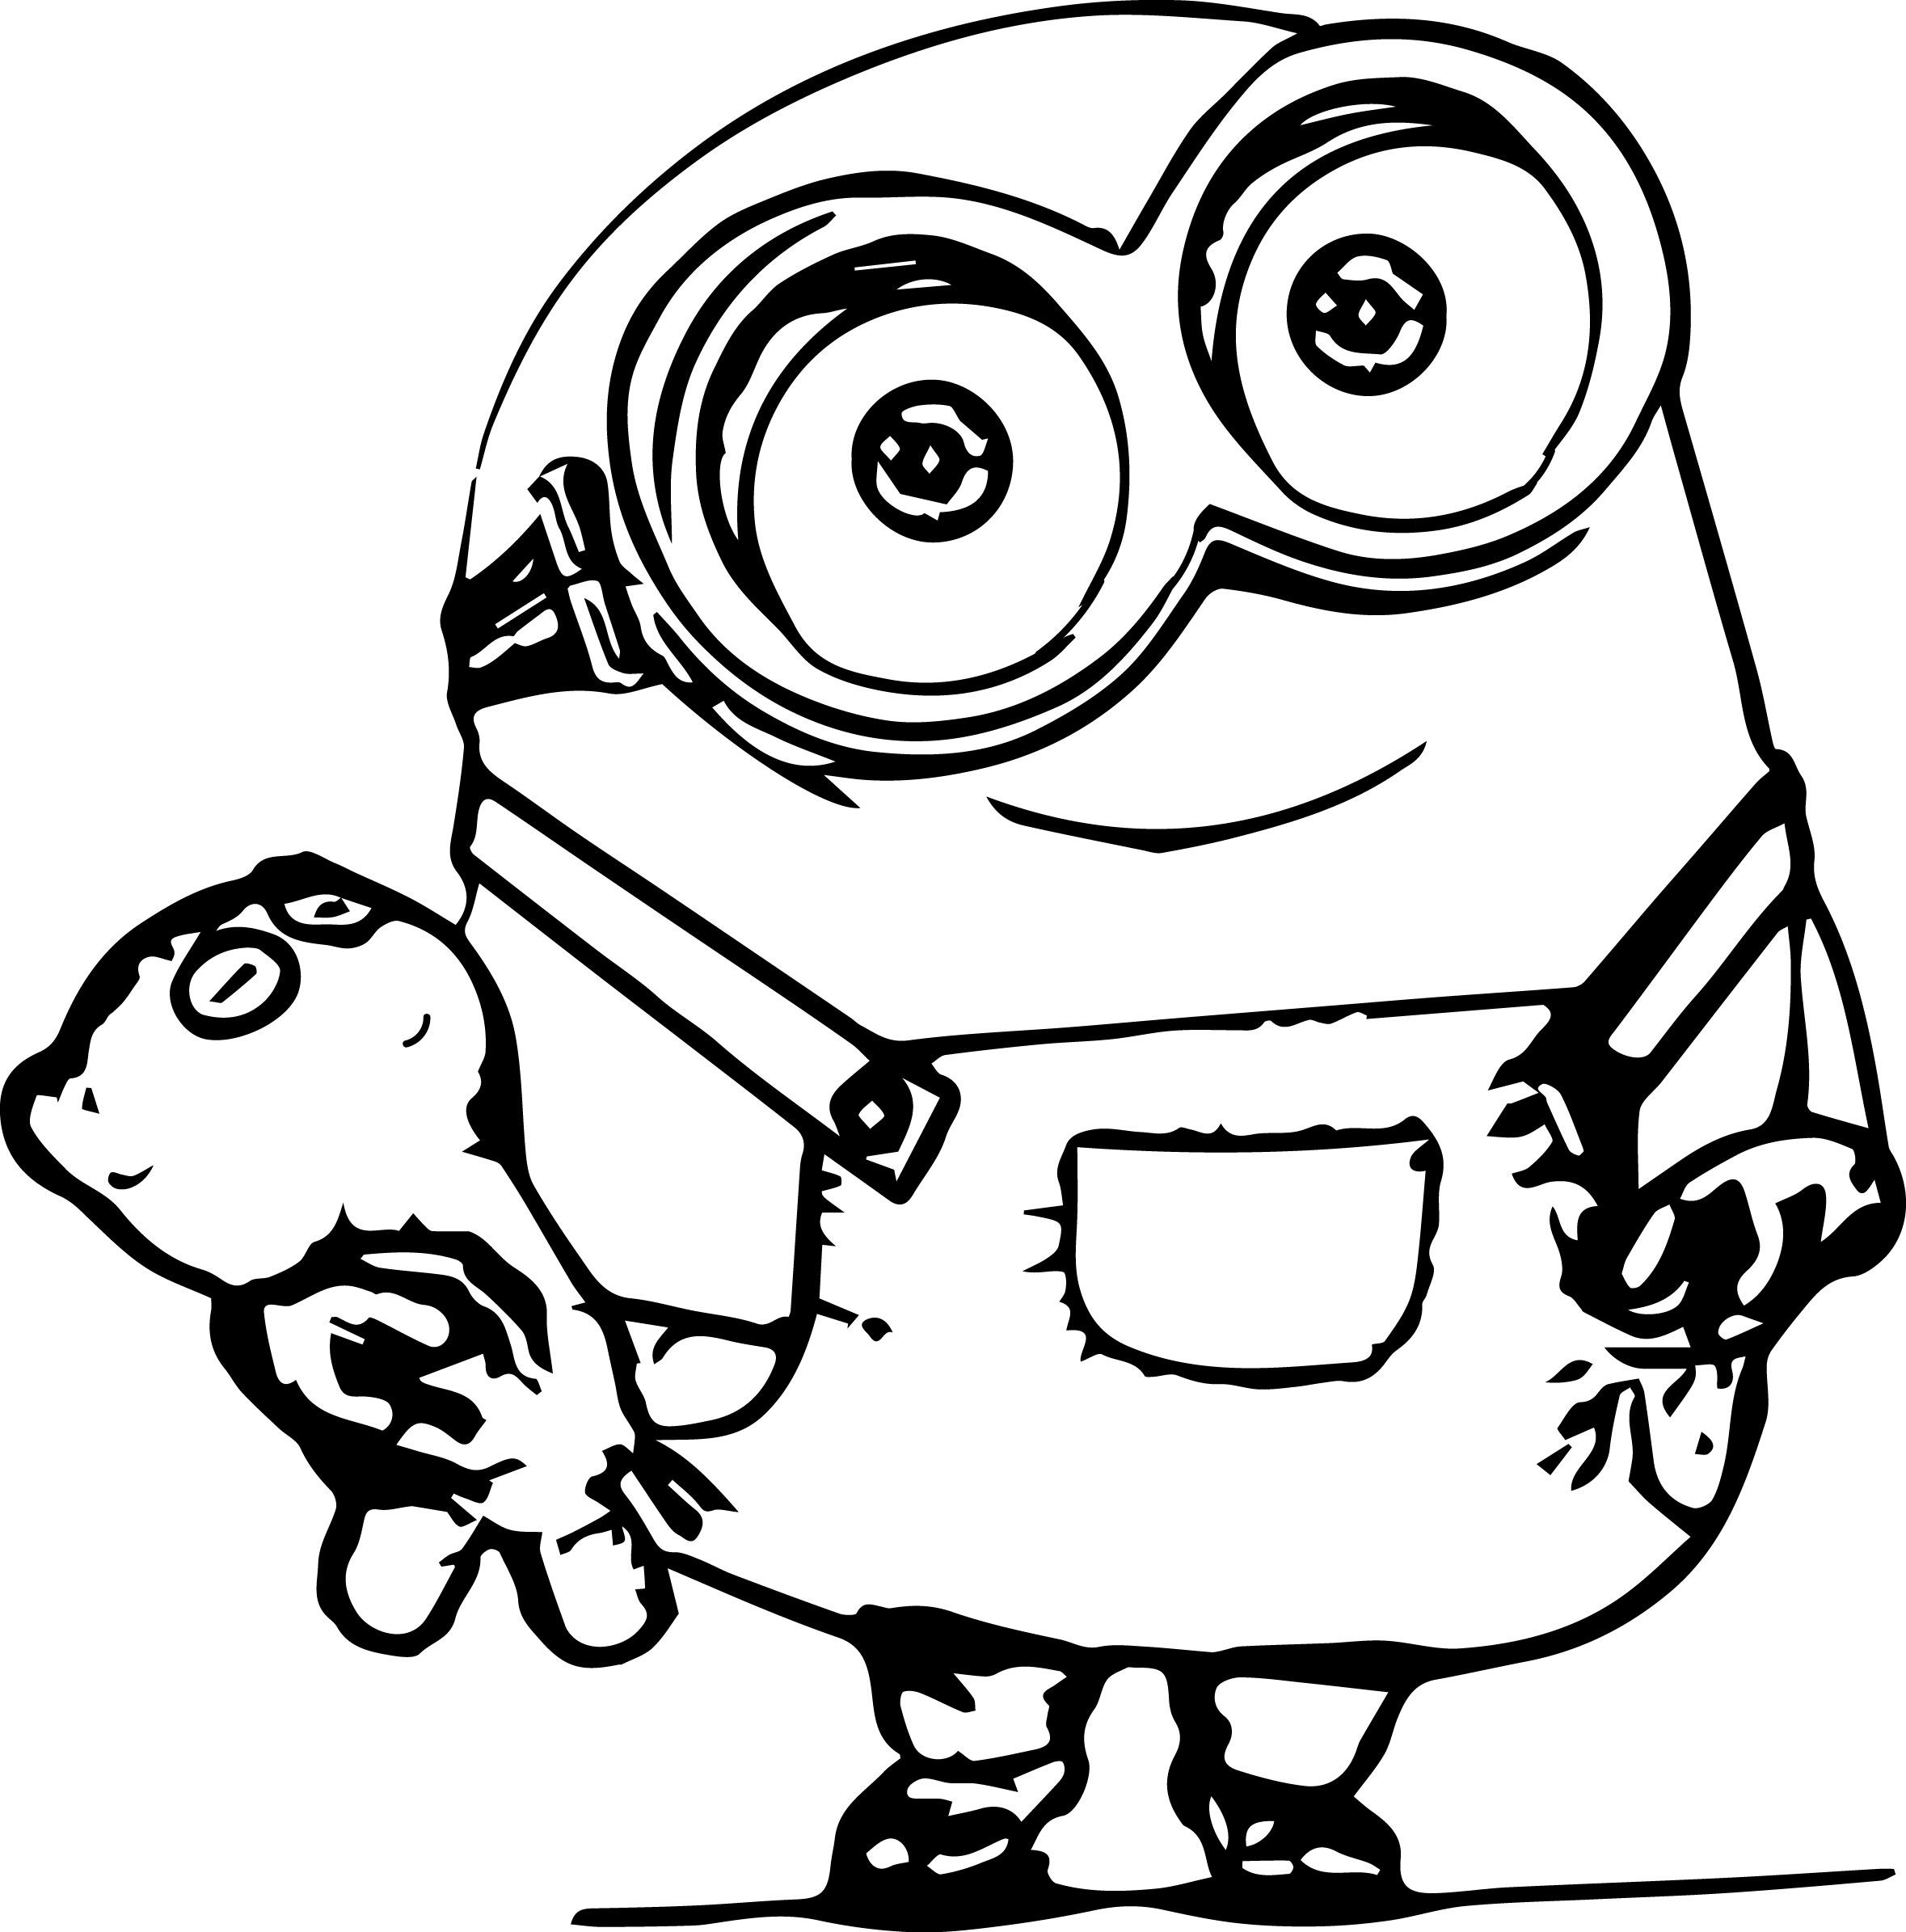 Print Evil Minion Despicable Me 2 Coloring Pages or Download Evil ...